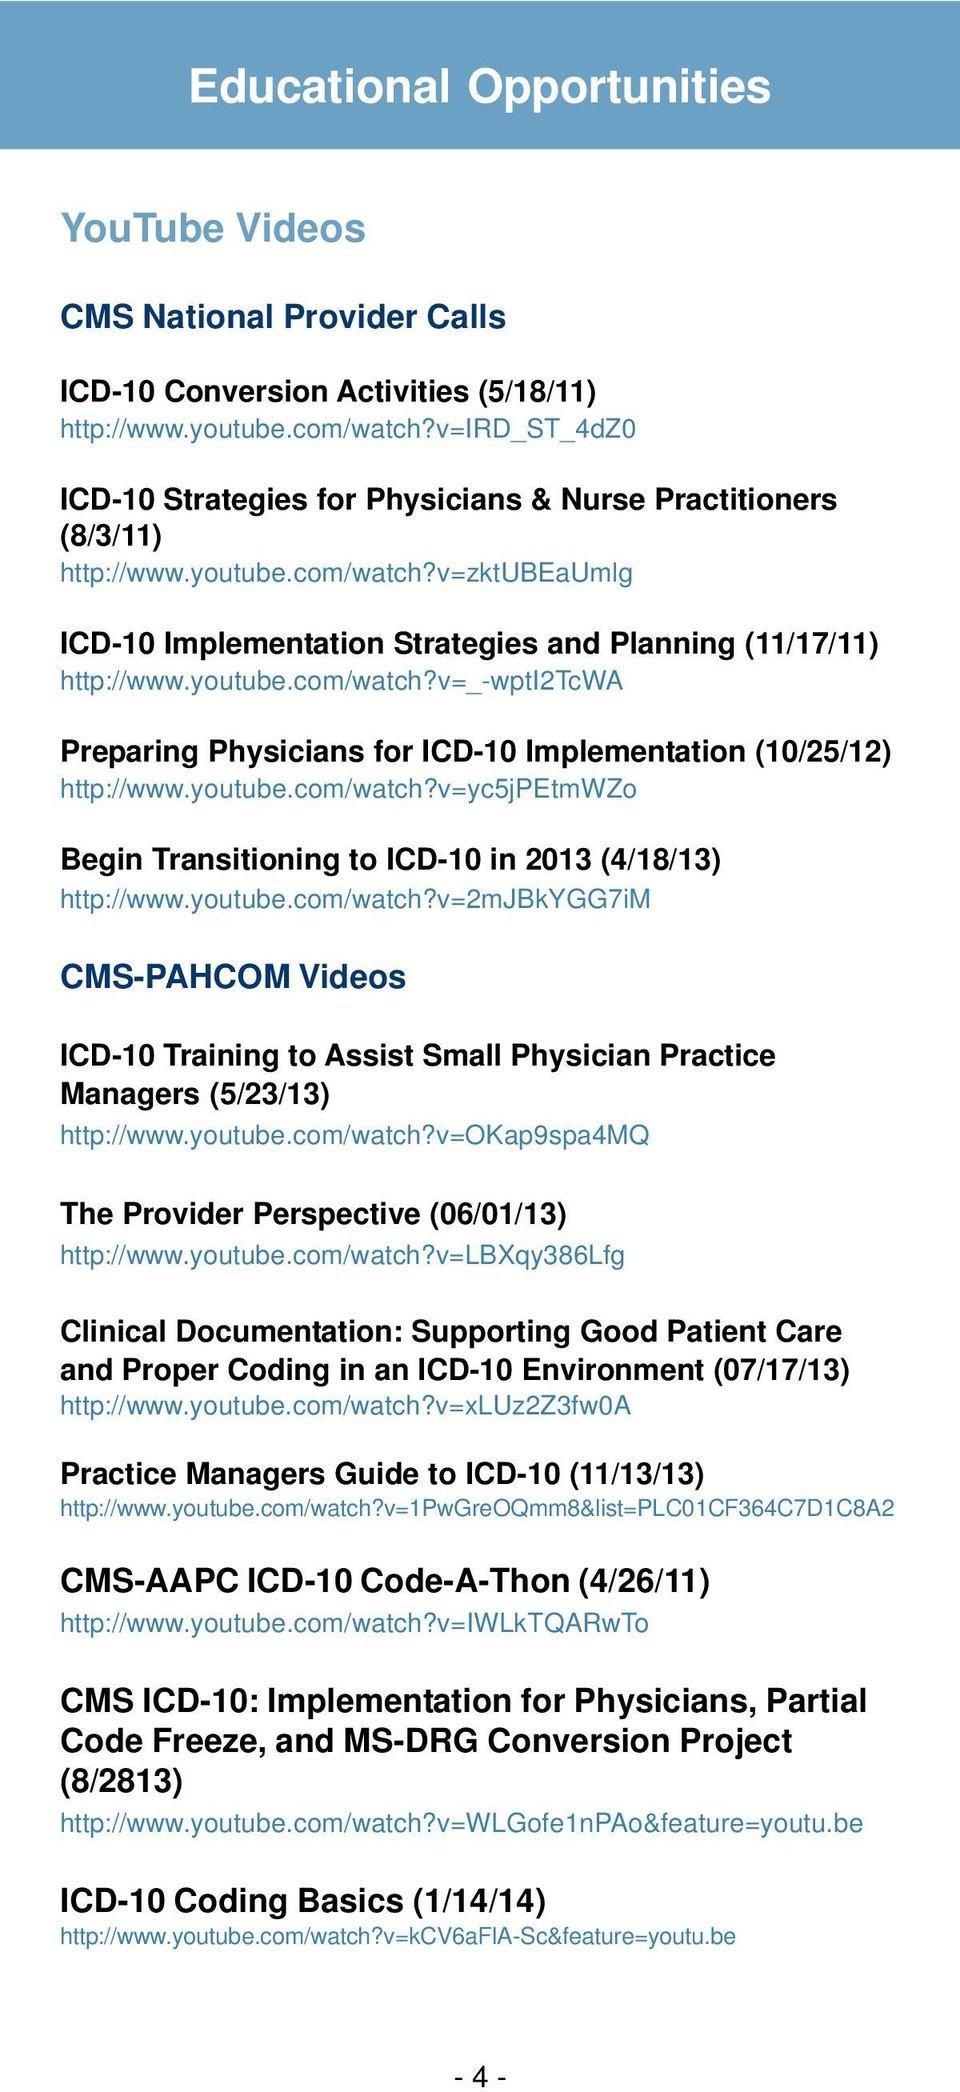 youtube.com/watch?v=yc5jpetmwzo Begin Transitioning to ICD-10 in 2013 (4/18/13) http://www.youtube.com/watch?v=2mjbkygg7im CMS-PAHCOM Videos ICD-10 Training to Assist Small Physician Practice Managers (5/23/13) http://www.